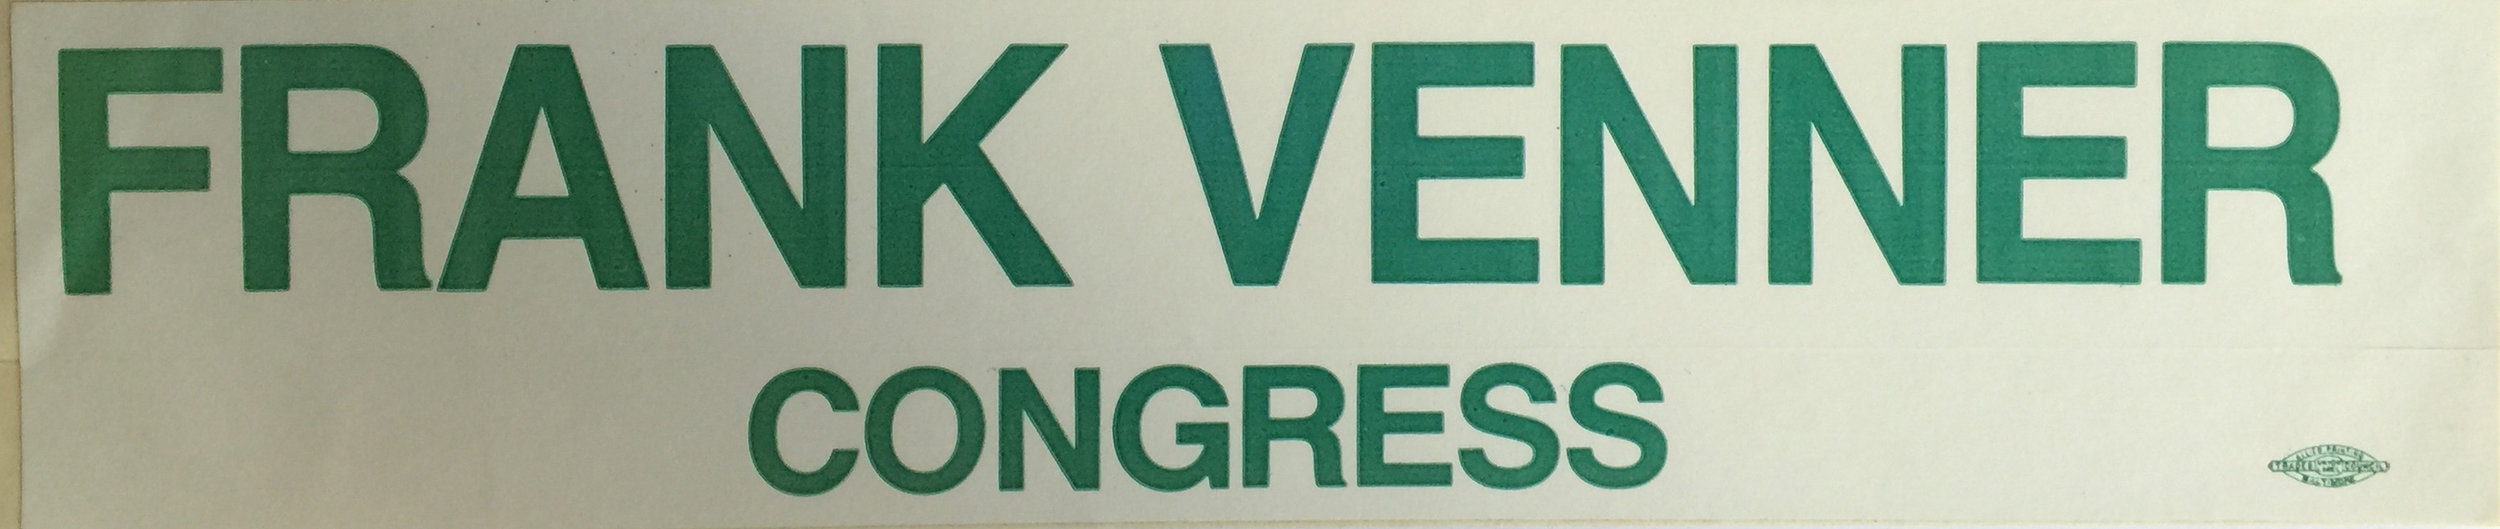 Sticker-congress VENNER.jpg